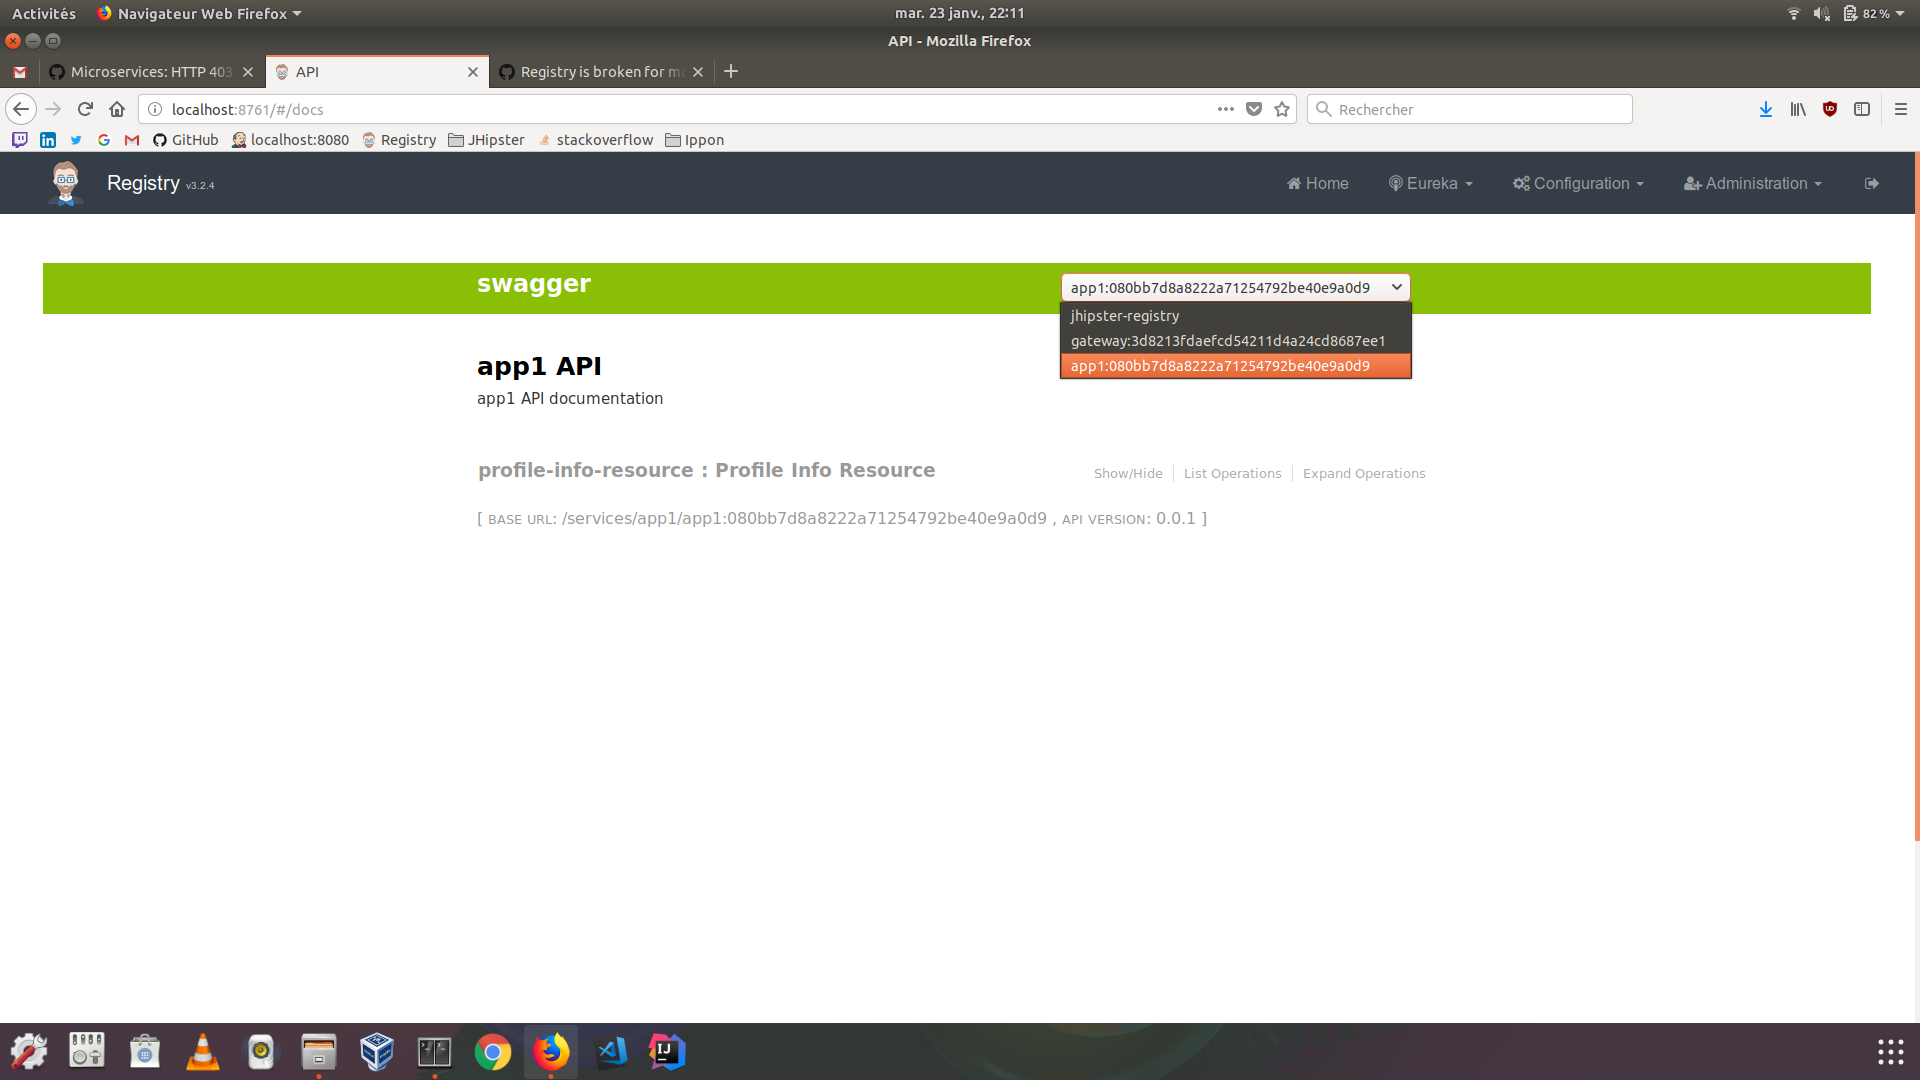 Microservices: HTTP 403 for the micro-app URL /v2/api/docs from the